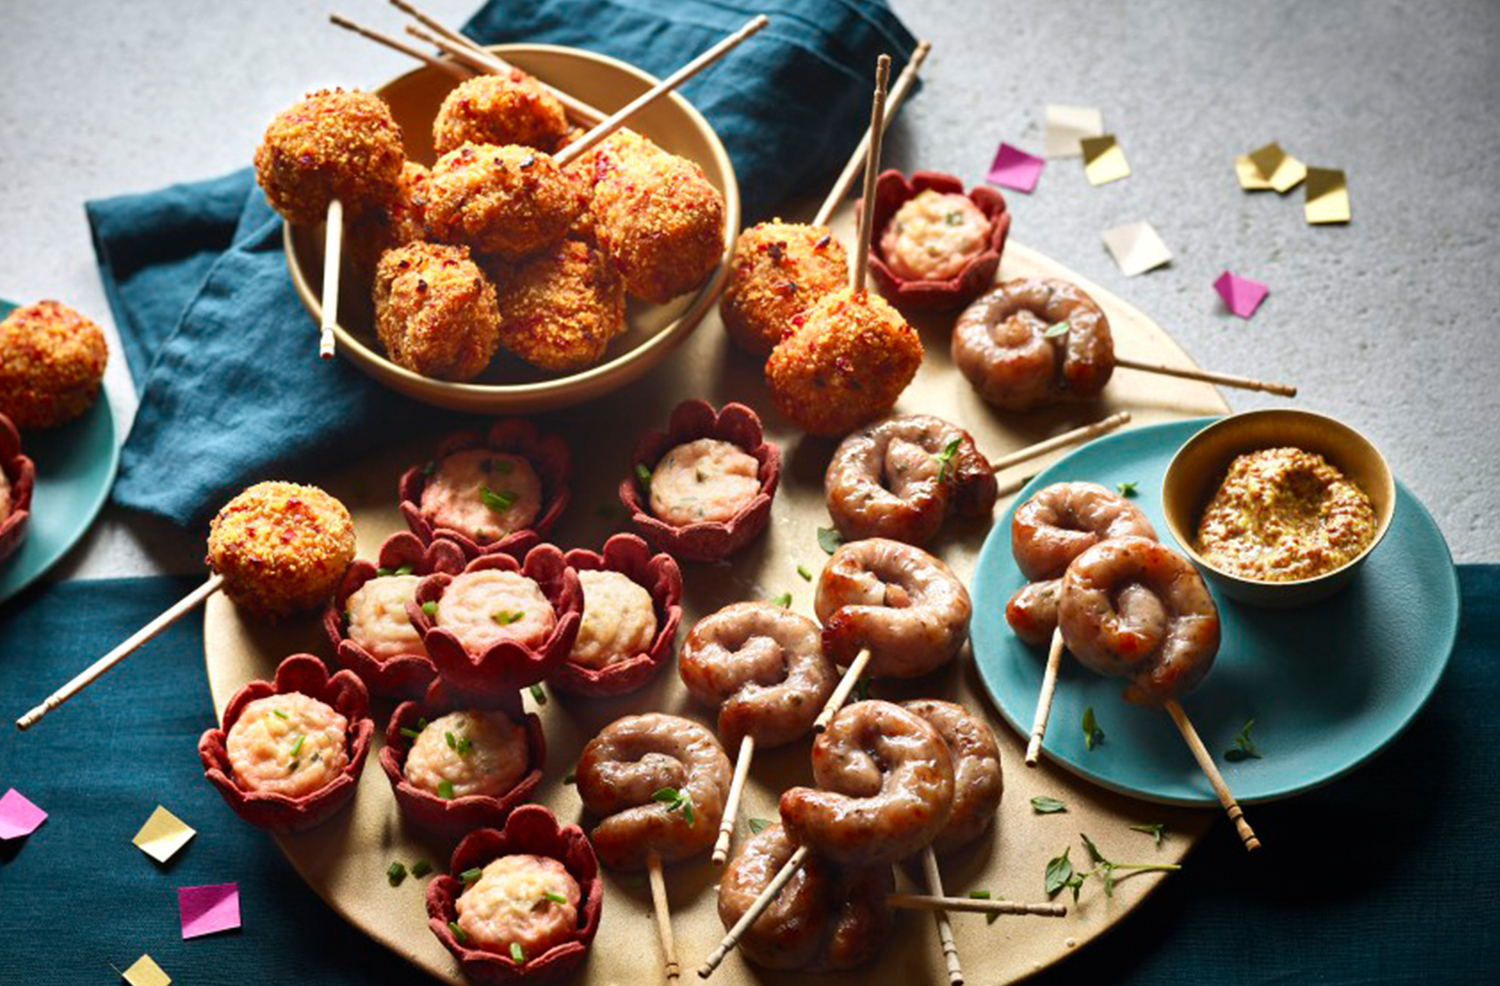 Image of party food